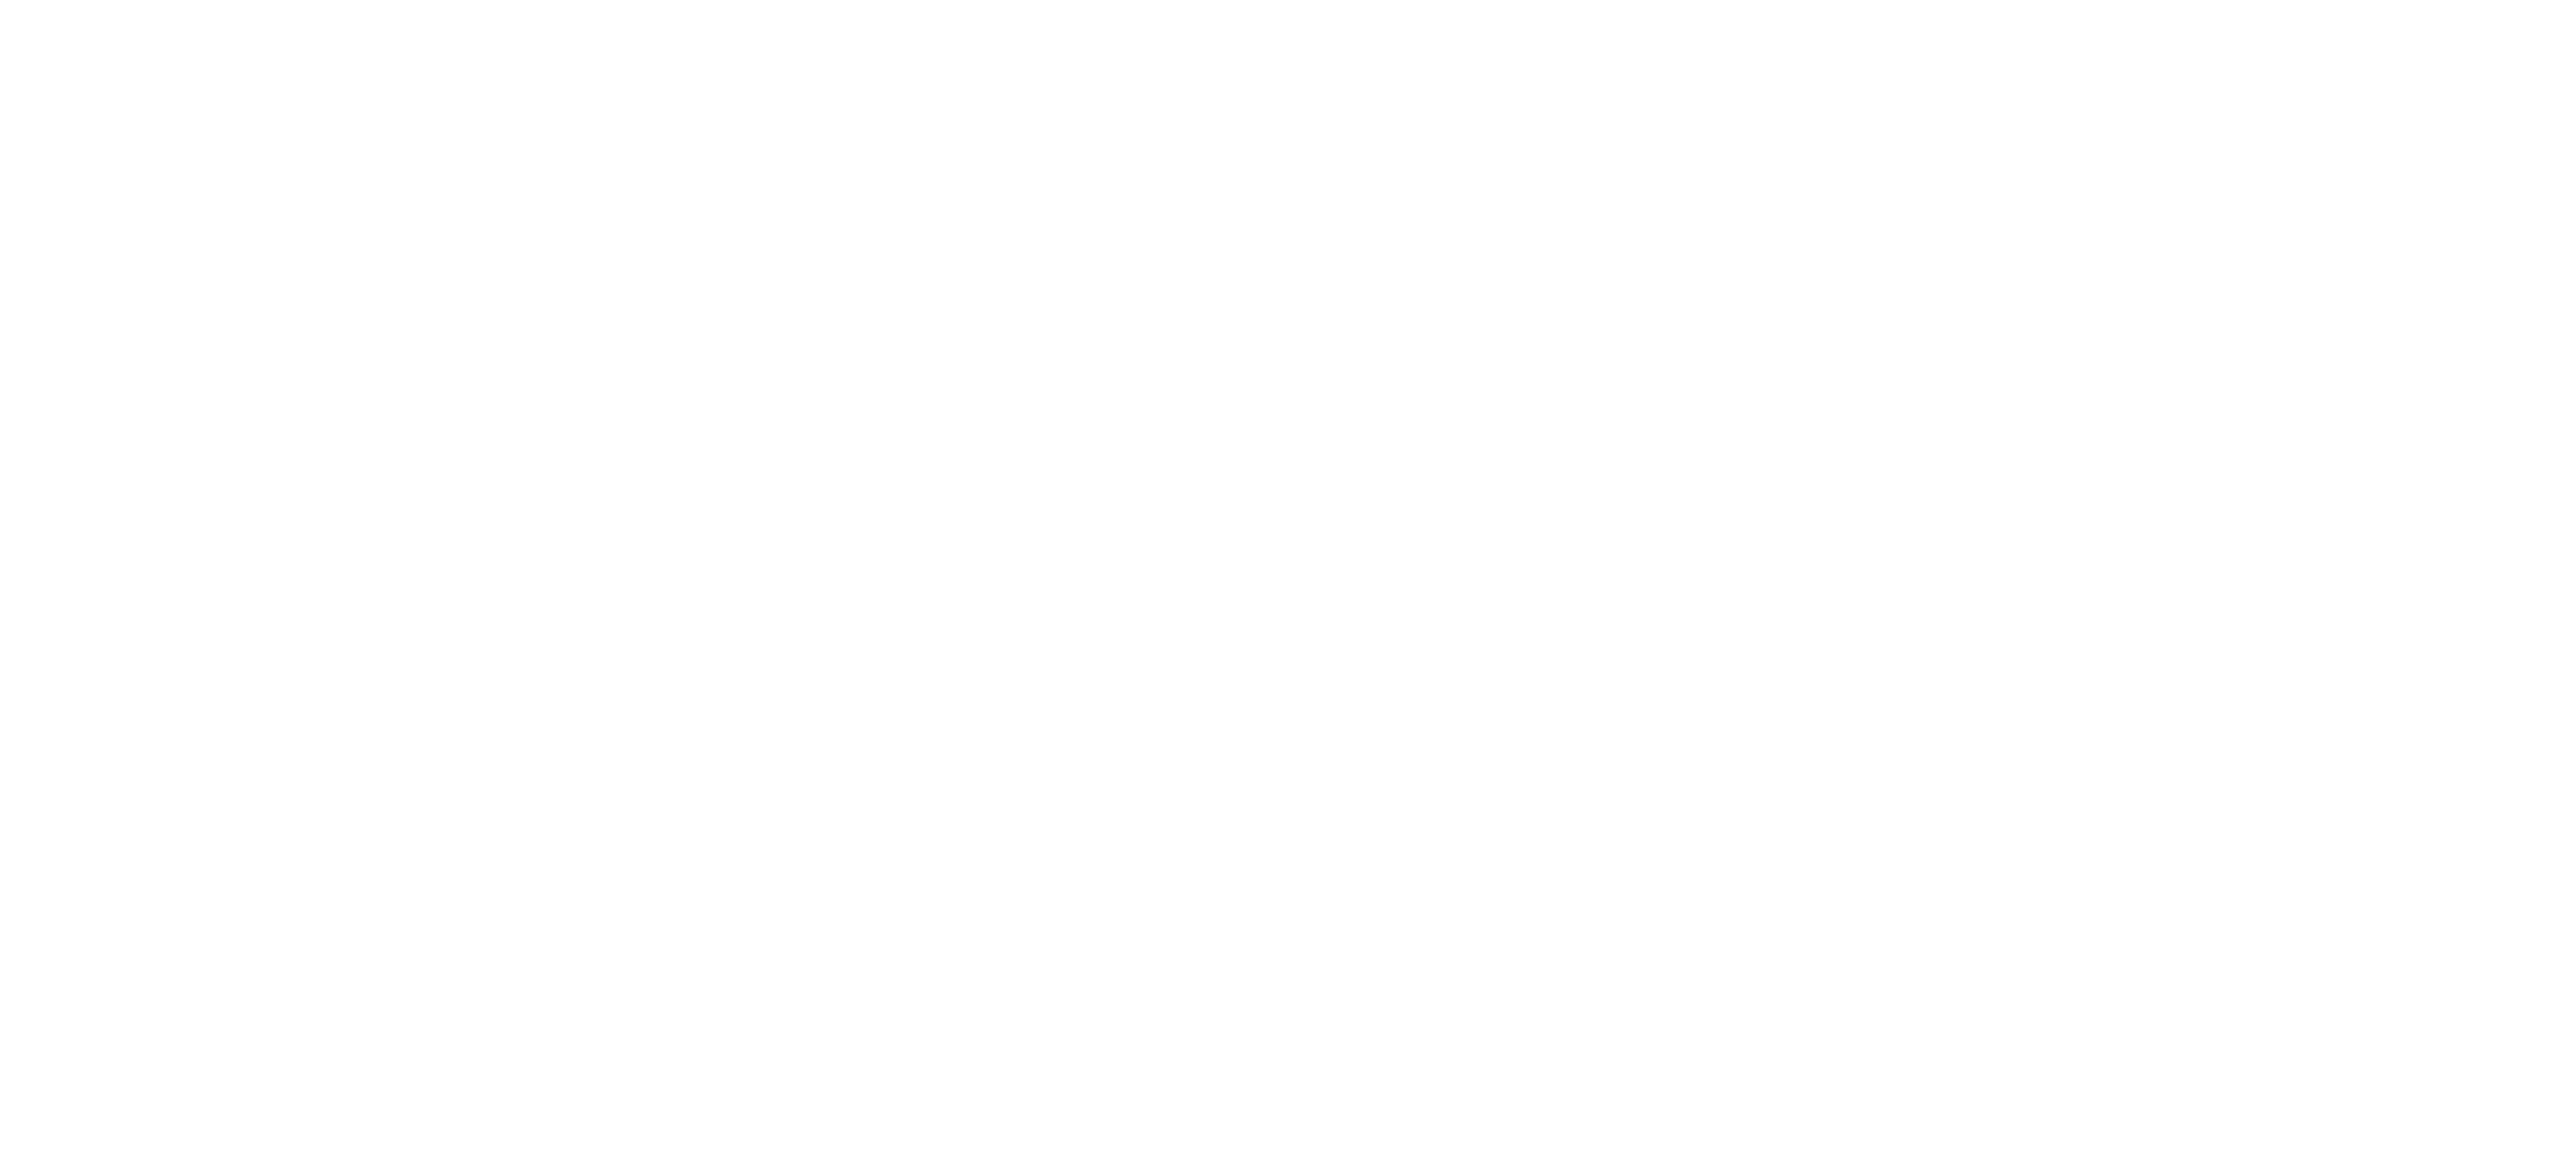 Behavior Analyst Supervisor